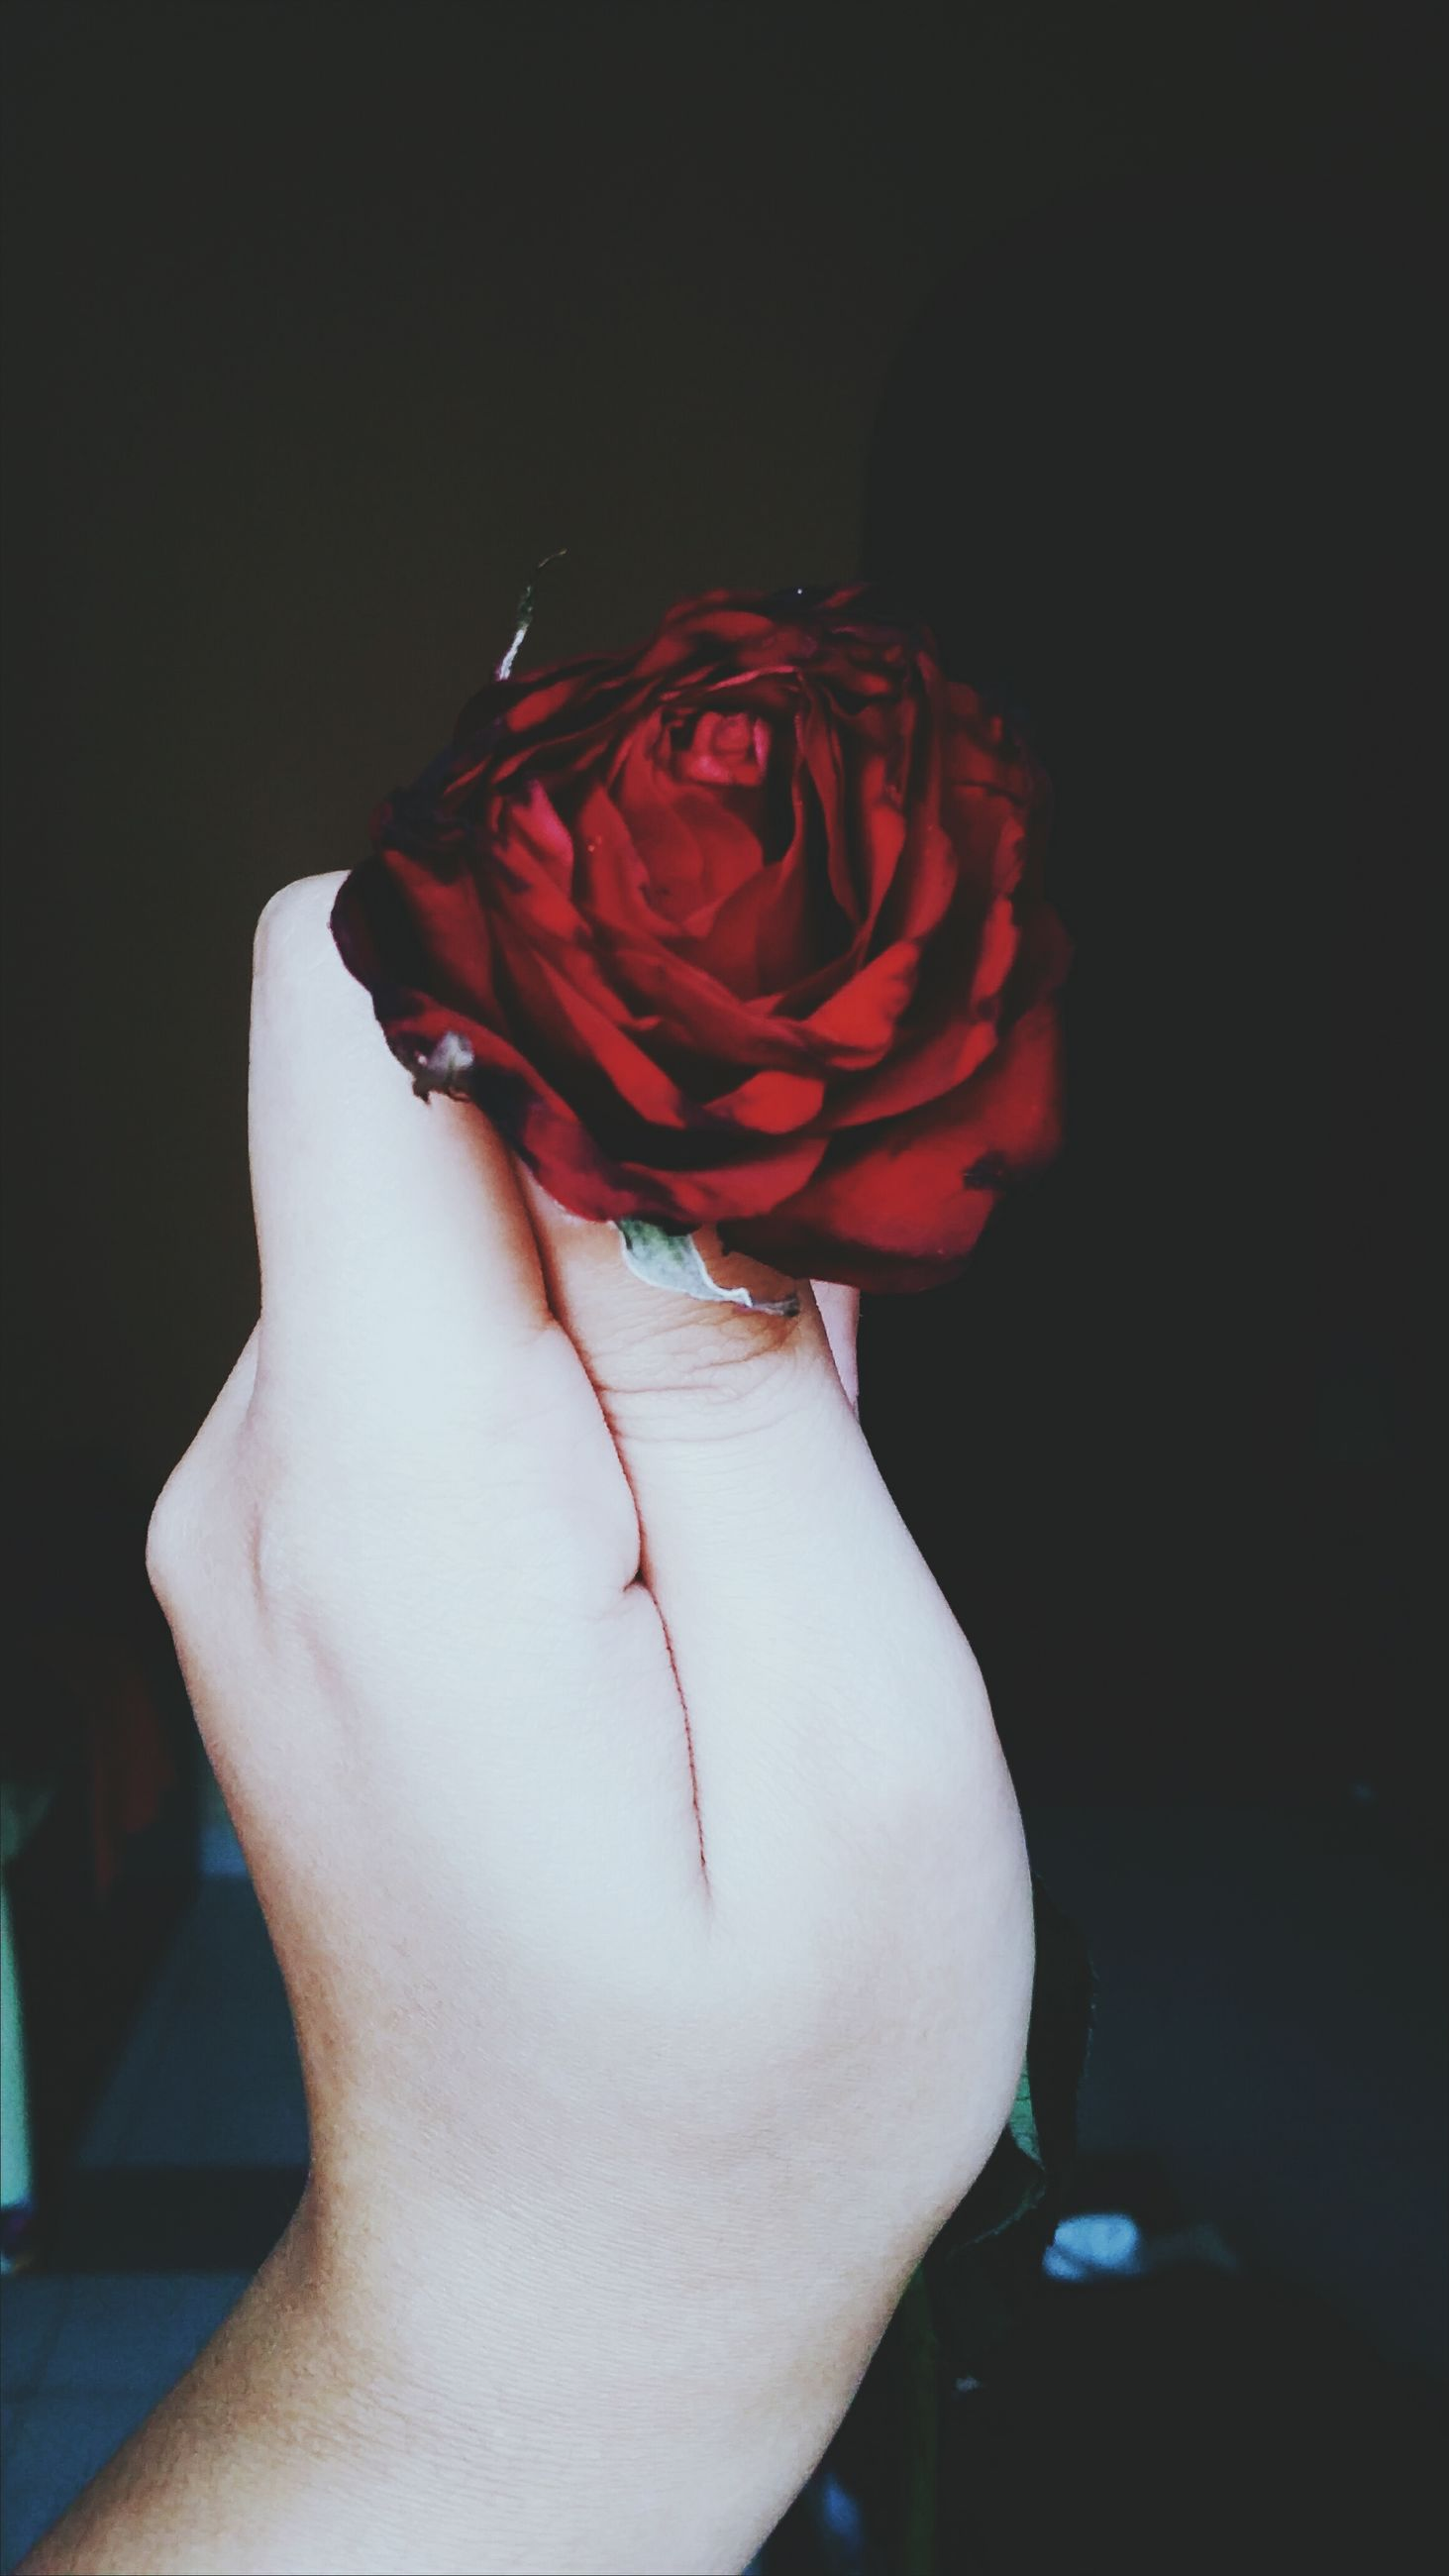 red, rose - flower, flower, studio shot, freshness, black background, rose, holding, flower head, one woman only, bunch of flowers, single flower, nature, petal, beauty in nature, person, softness, fragility, bloom